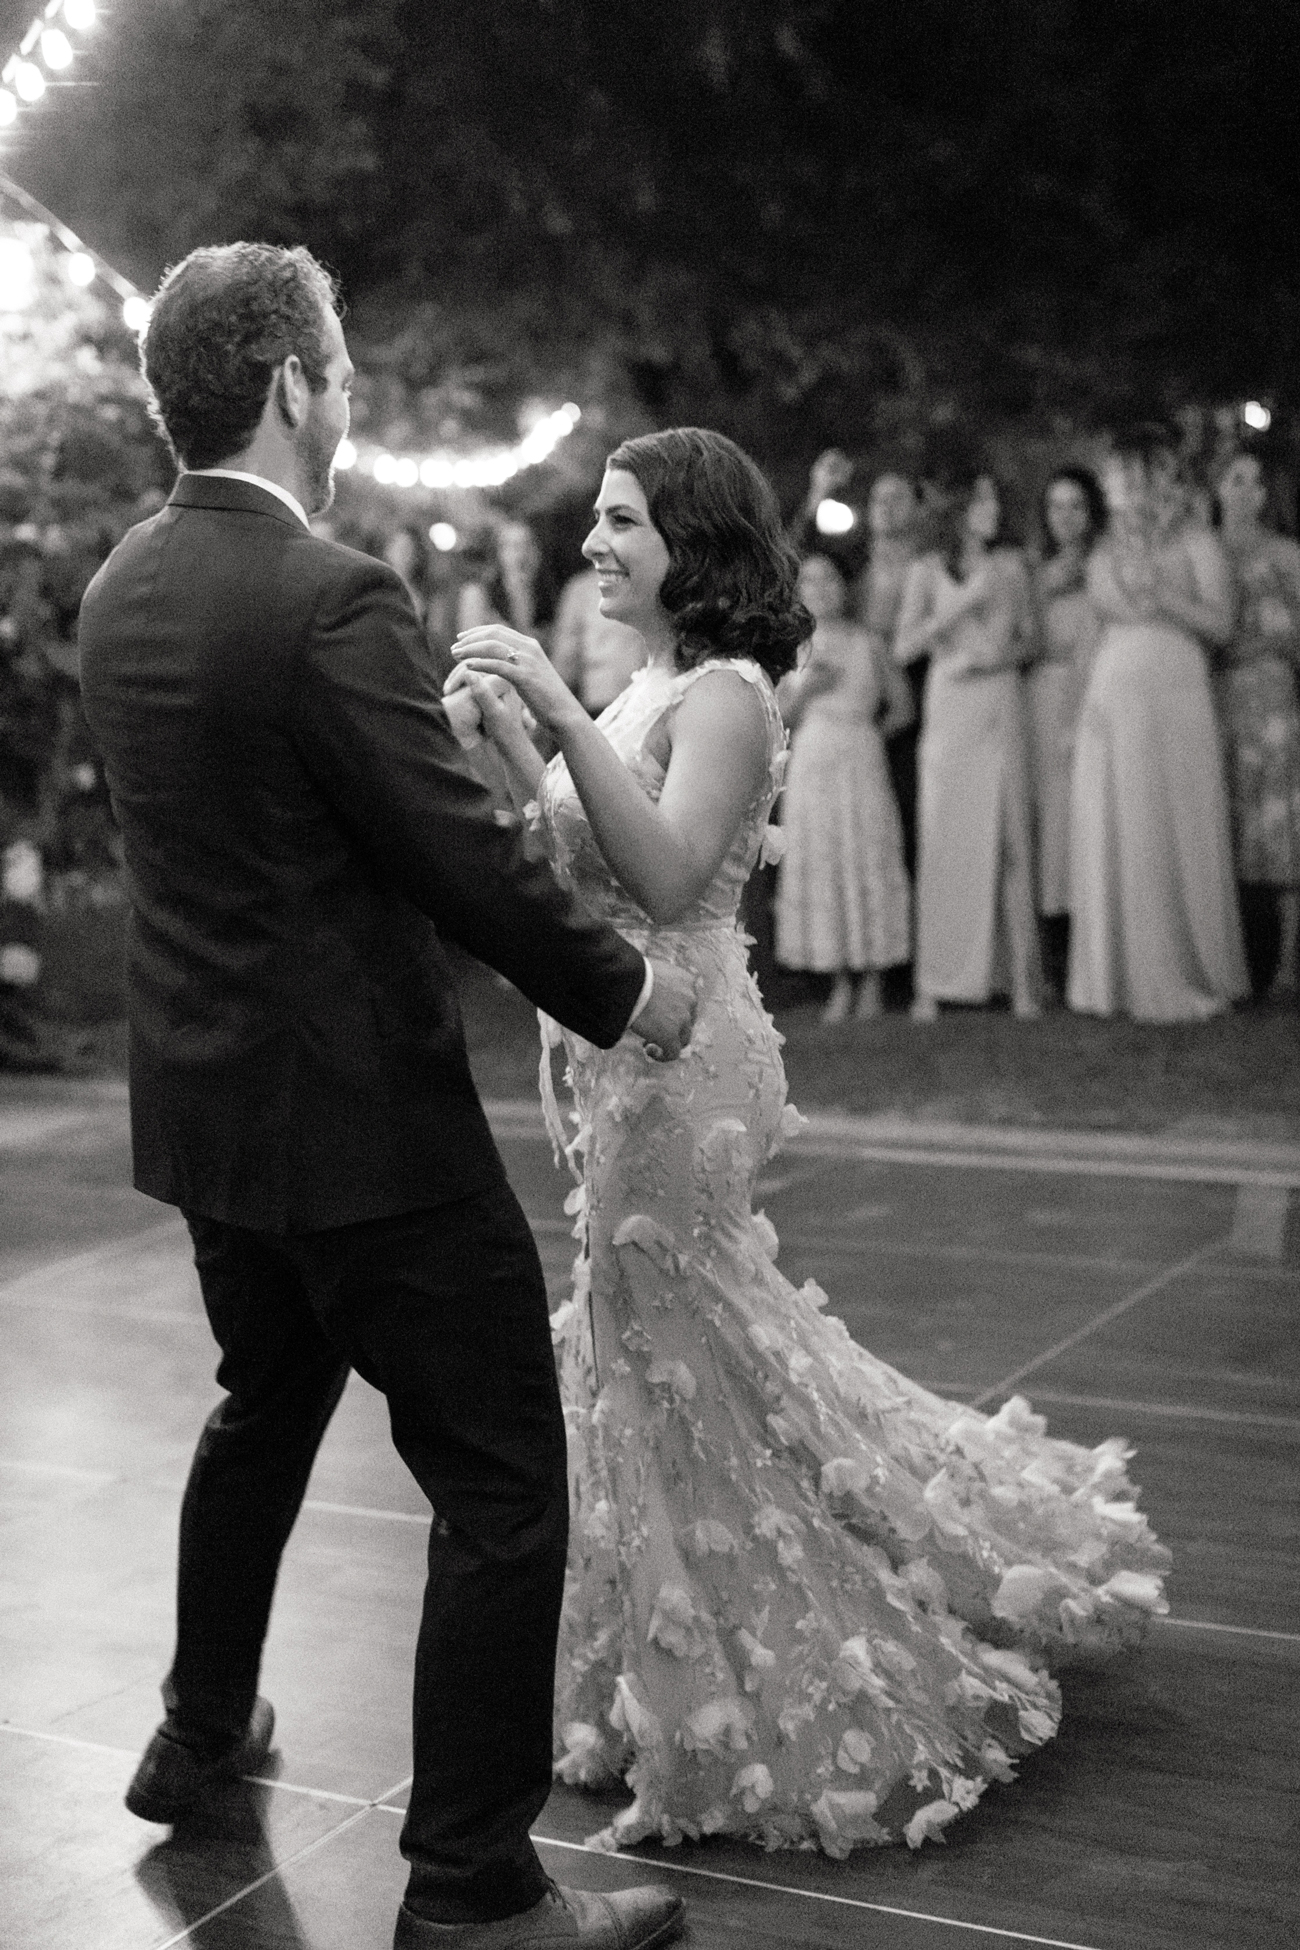 bride and groom share first dance on dance floor